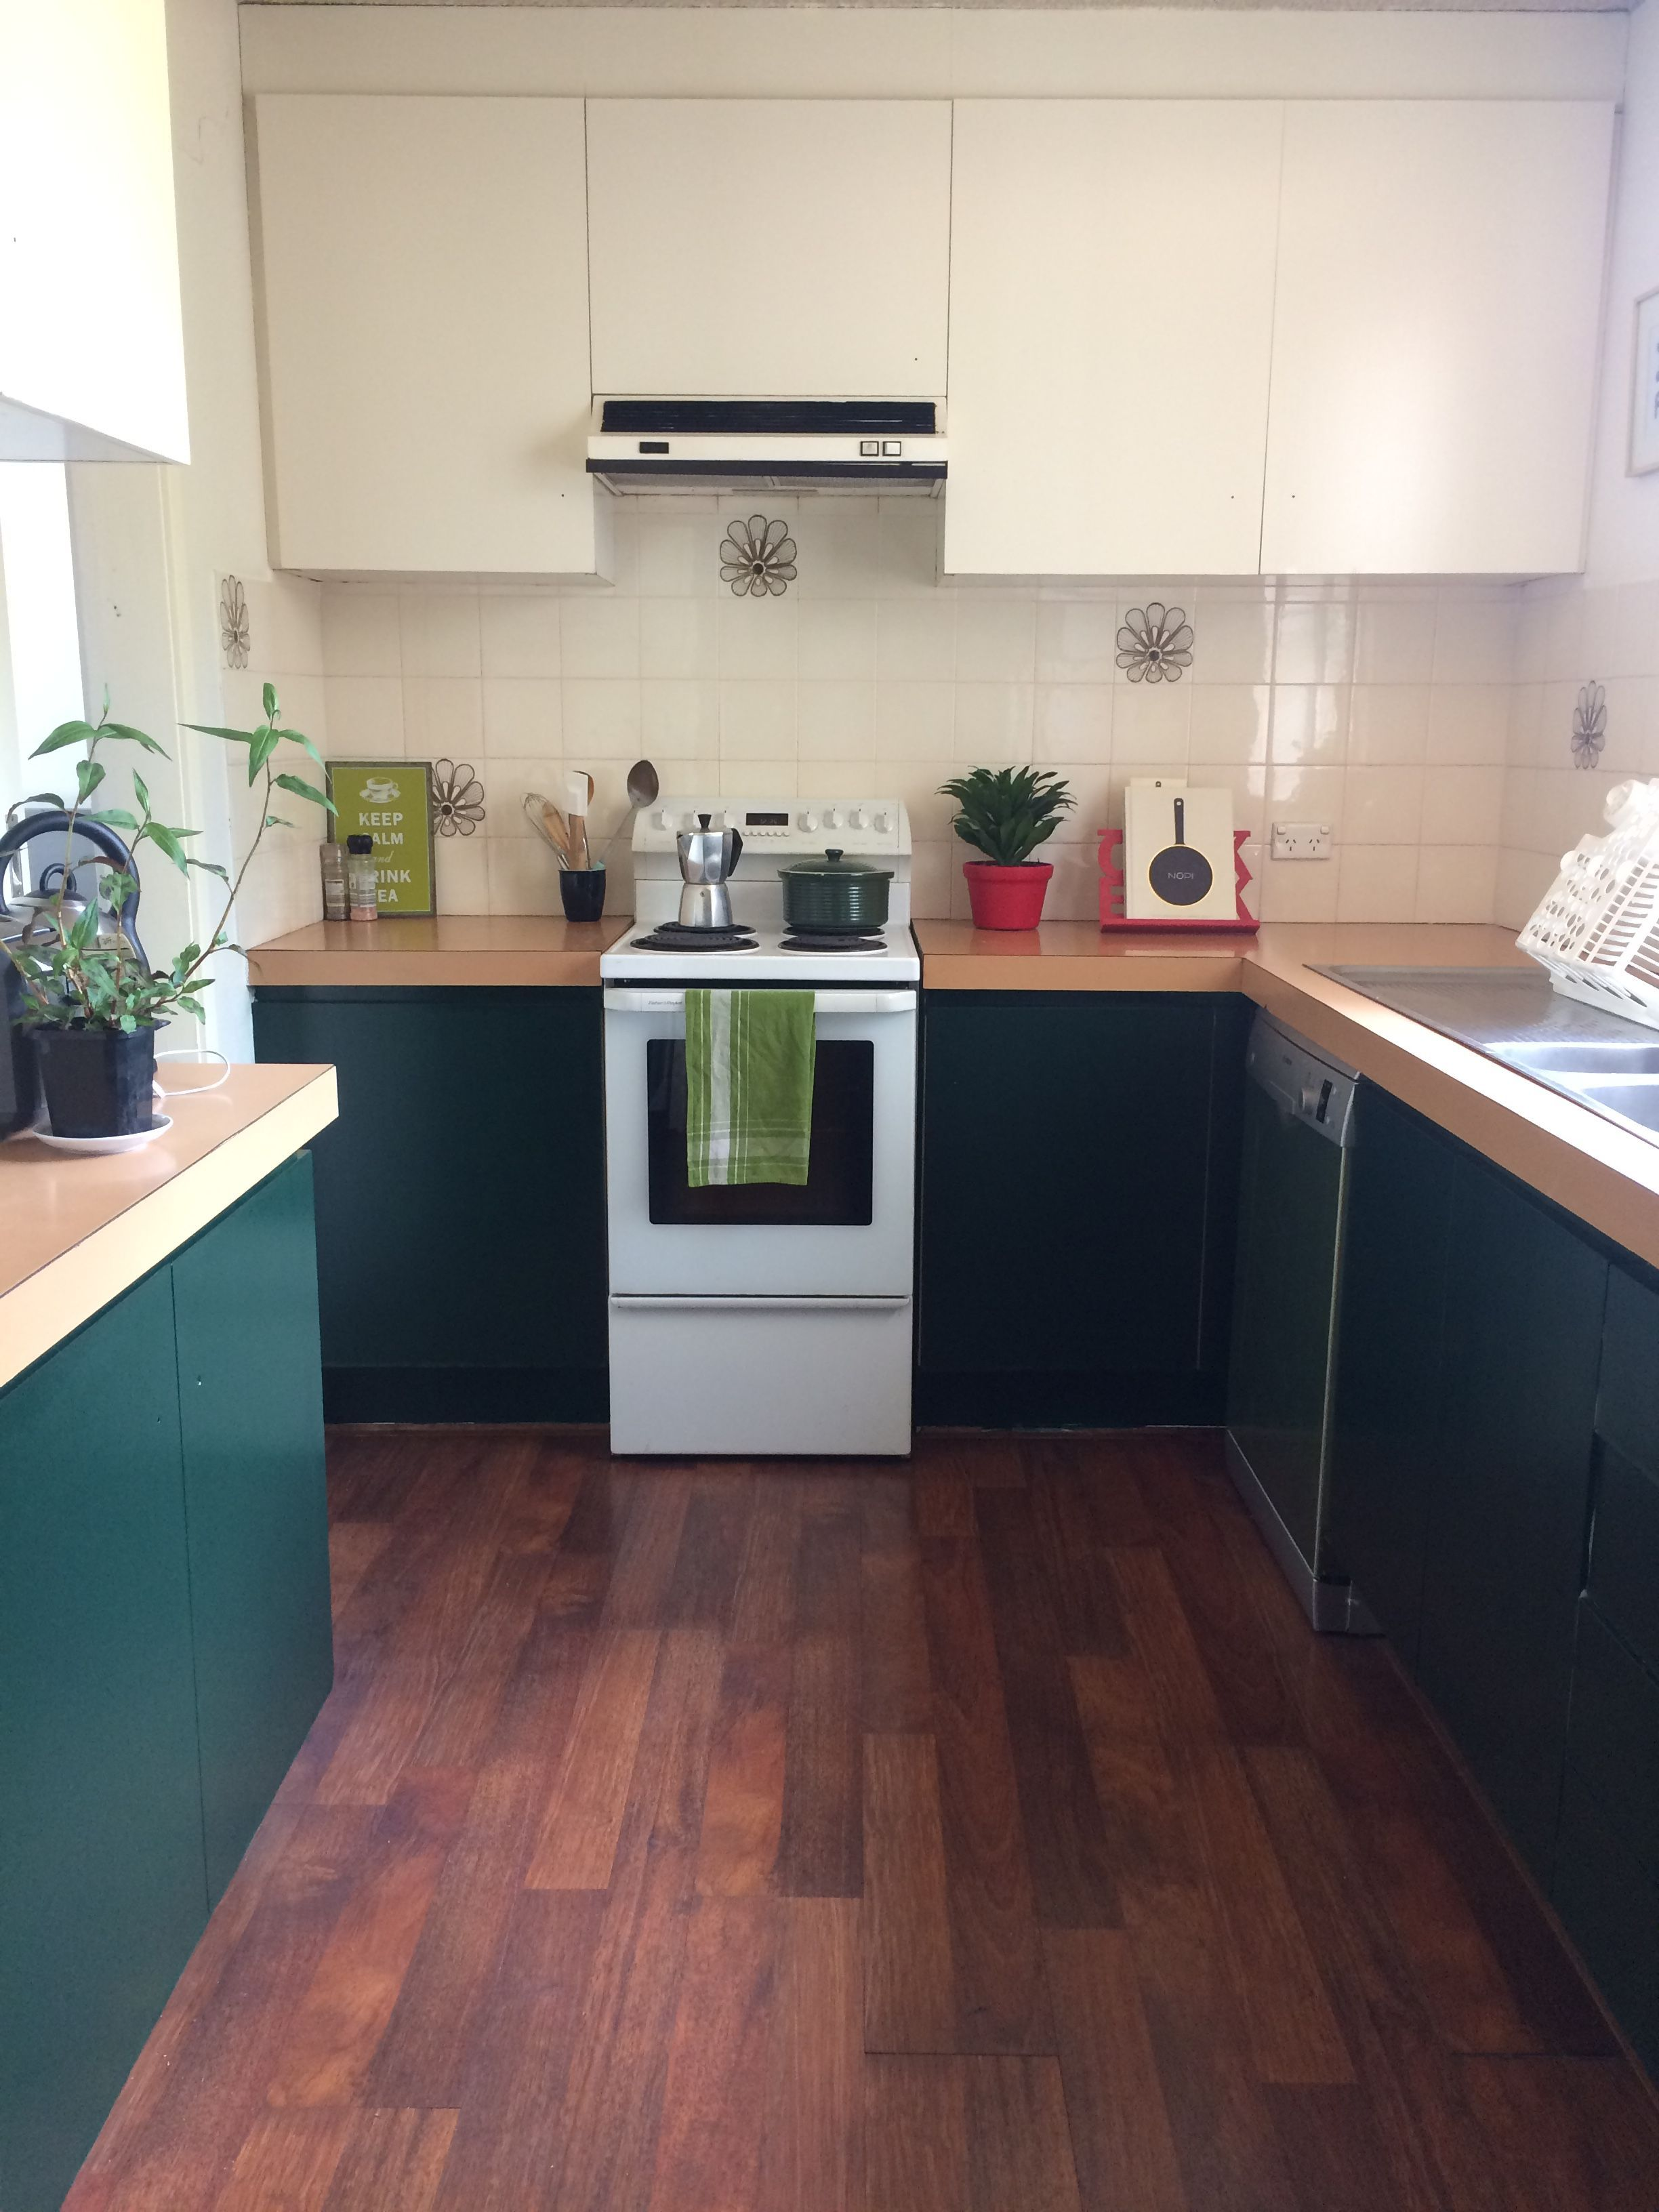 Before And After An Unbelievably Quick Kitchen Update